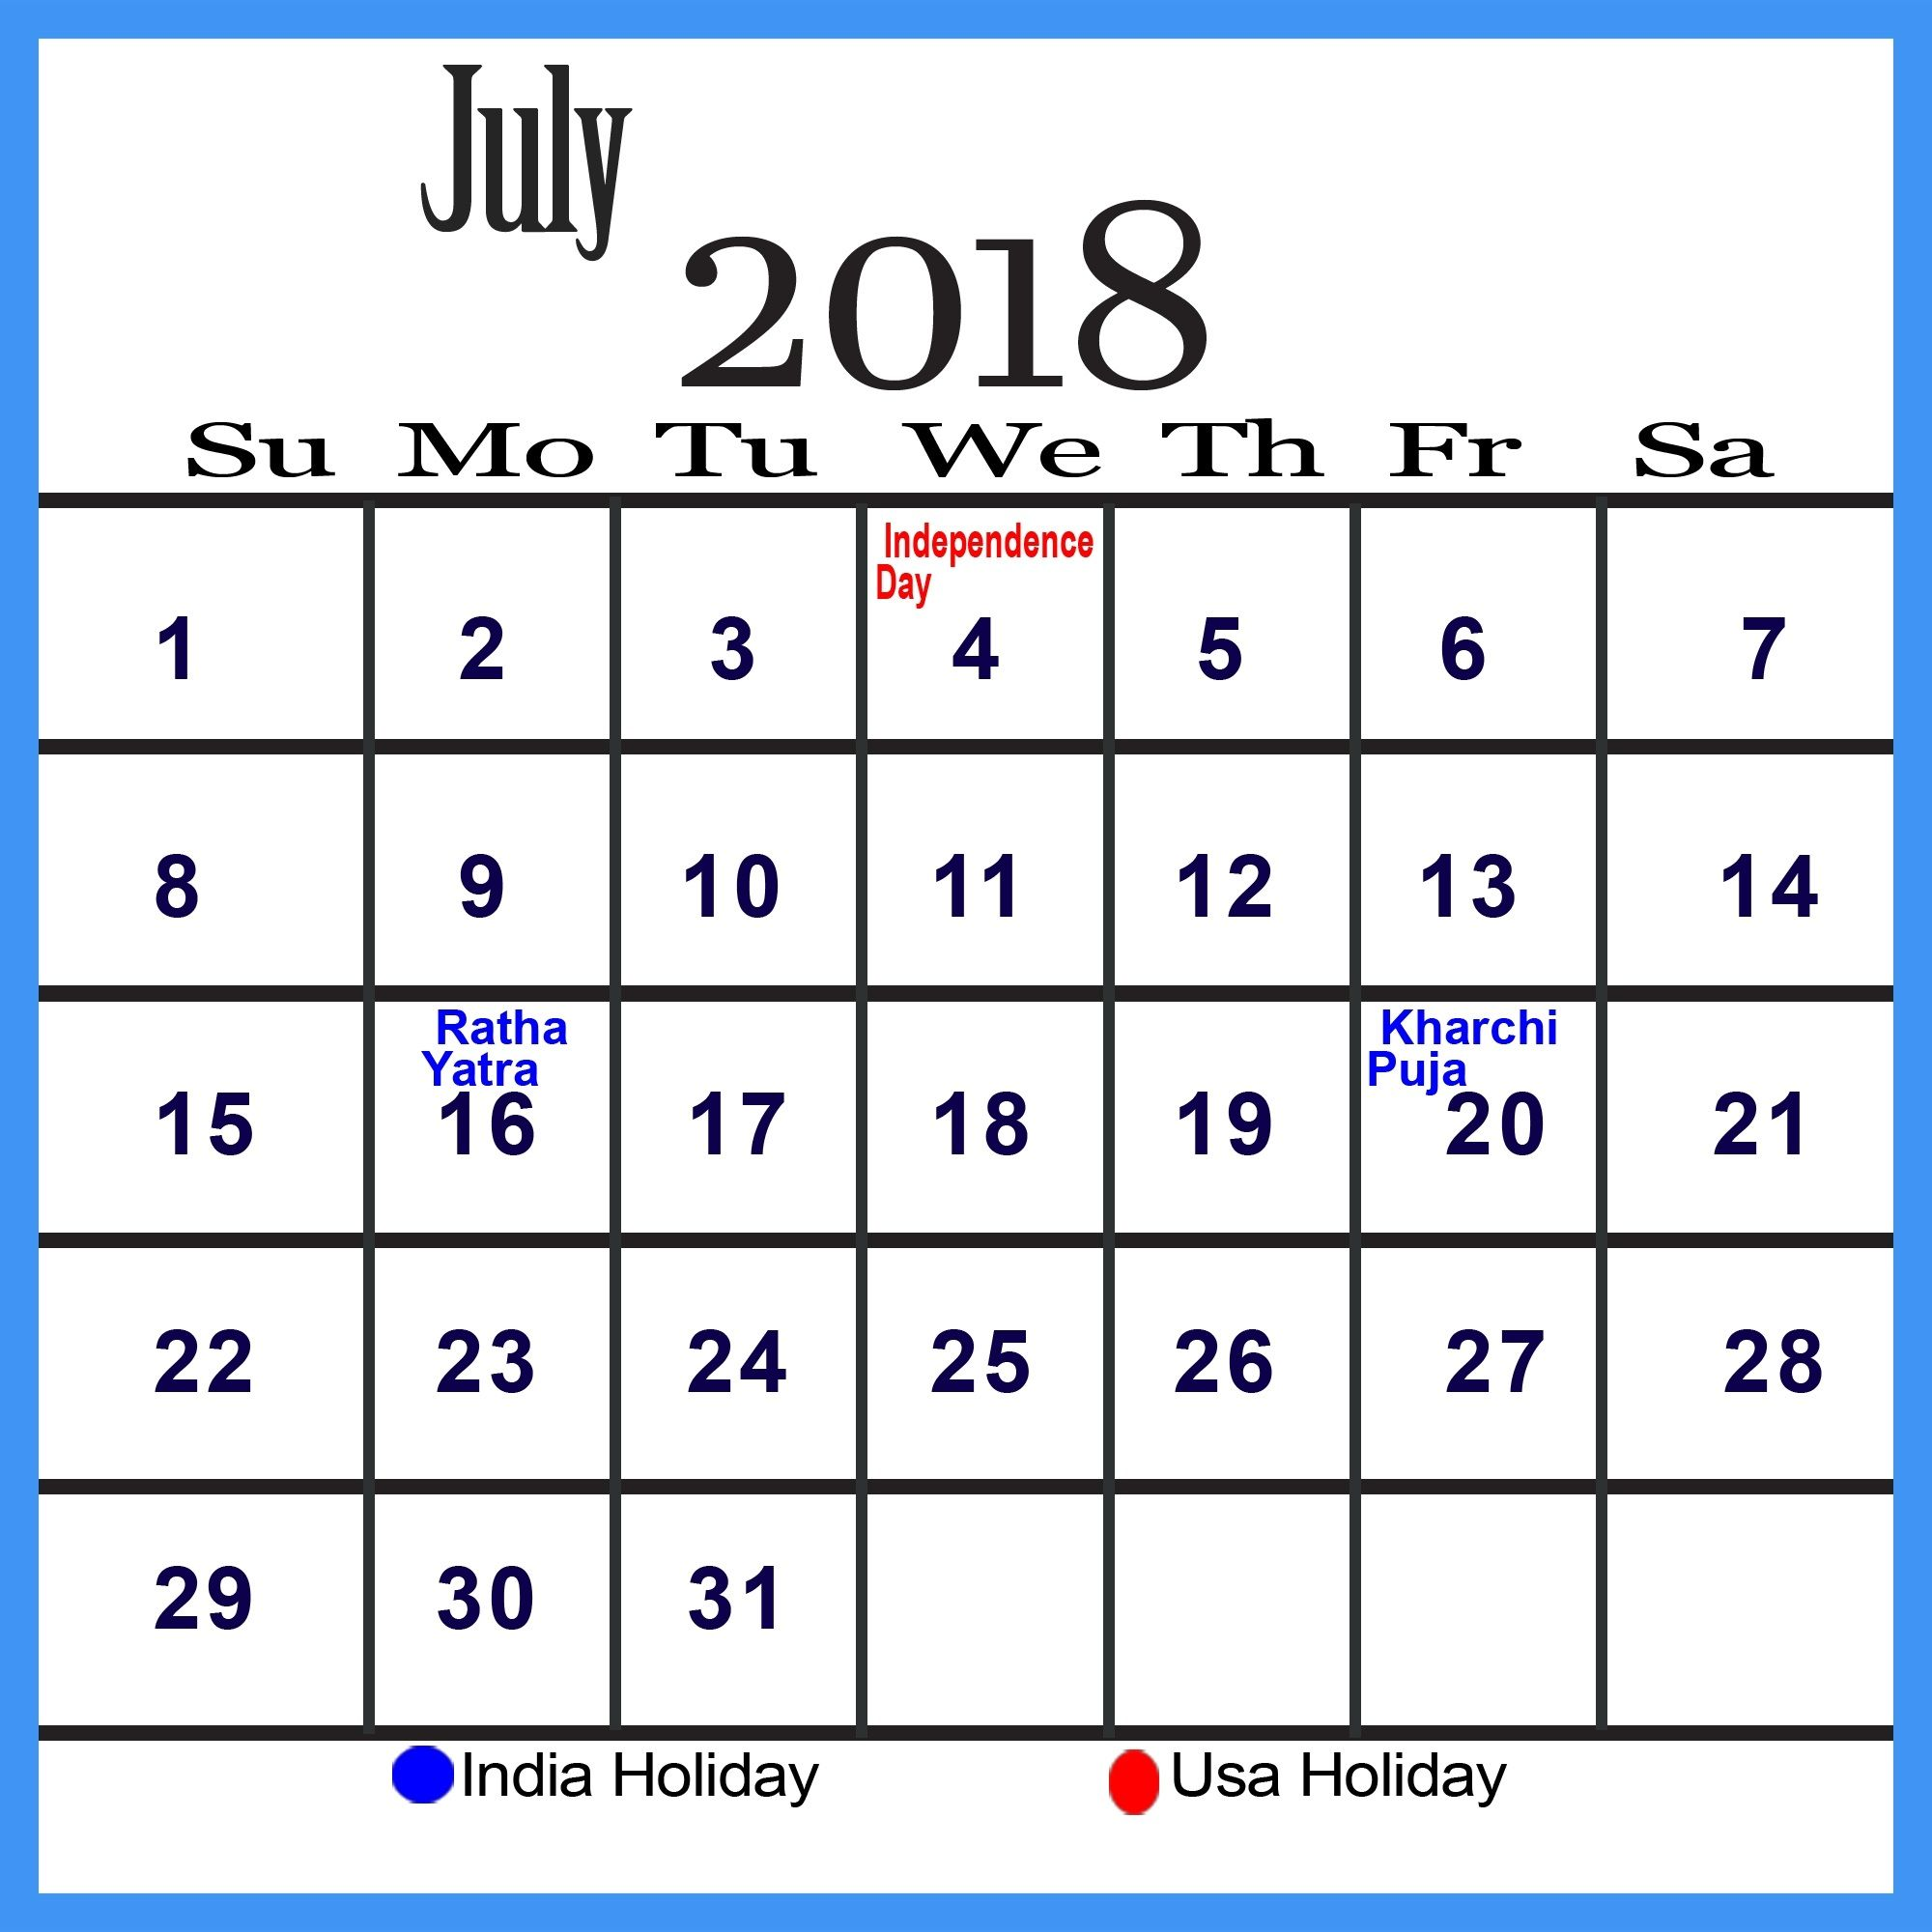 Decorative July 2018 Calendar July 2018 Calendar PDF Word Excel